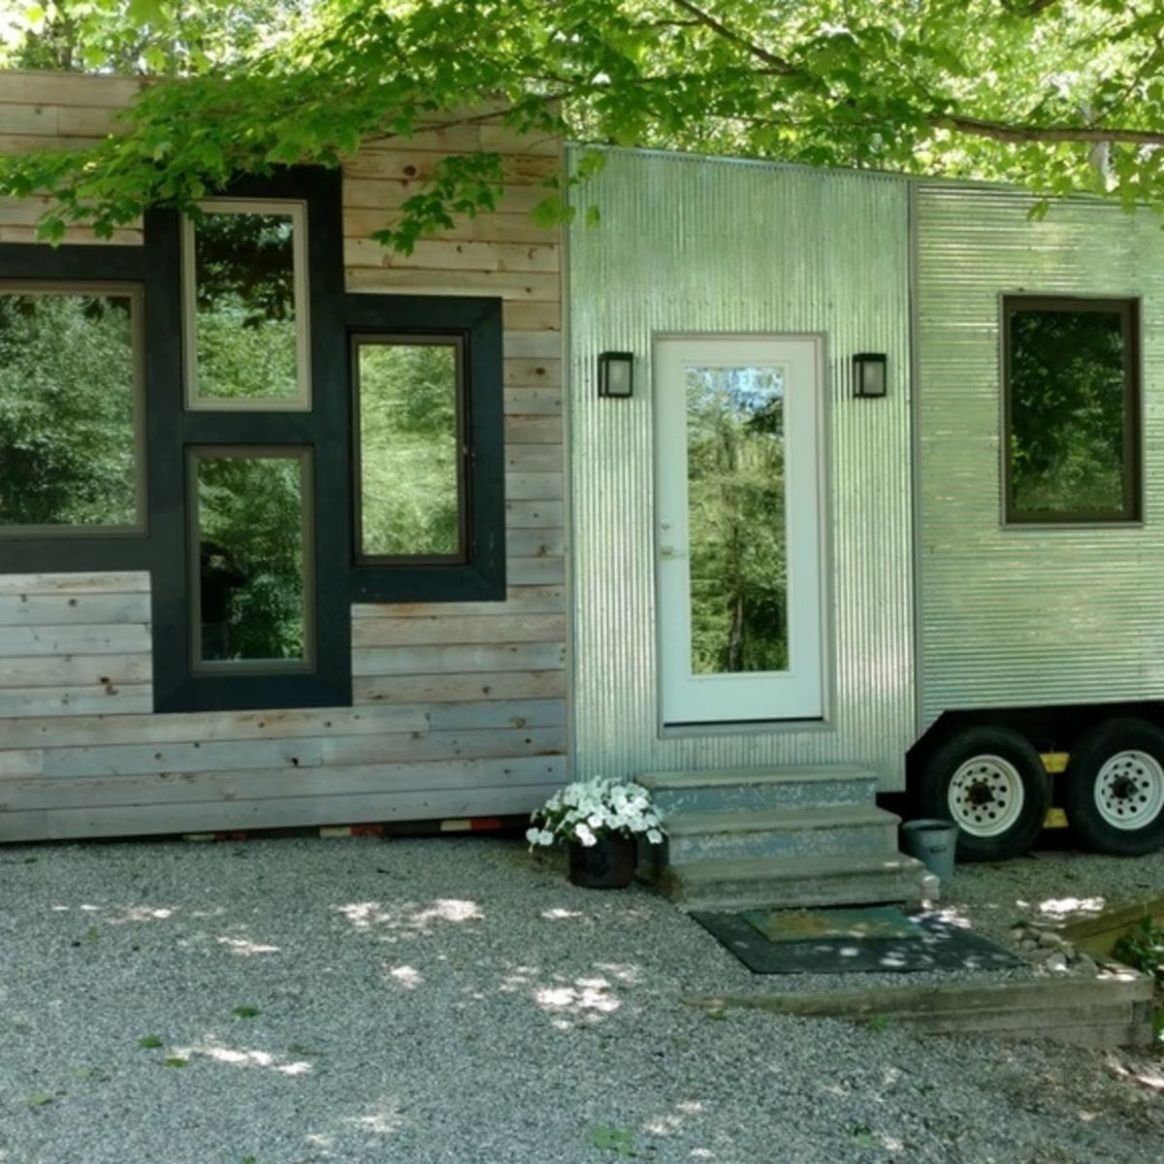 Tinyhaus - Tiny House for Sale in Sand Lake, Michigan - Tiny House Listings - tiny house michigan